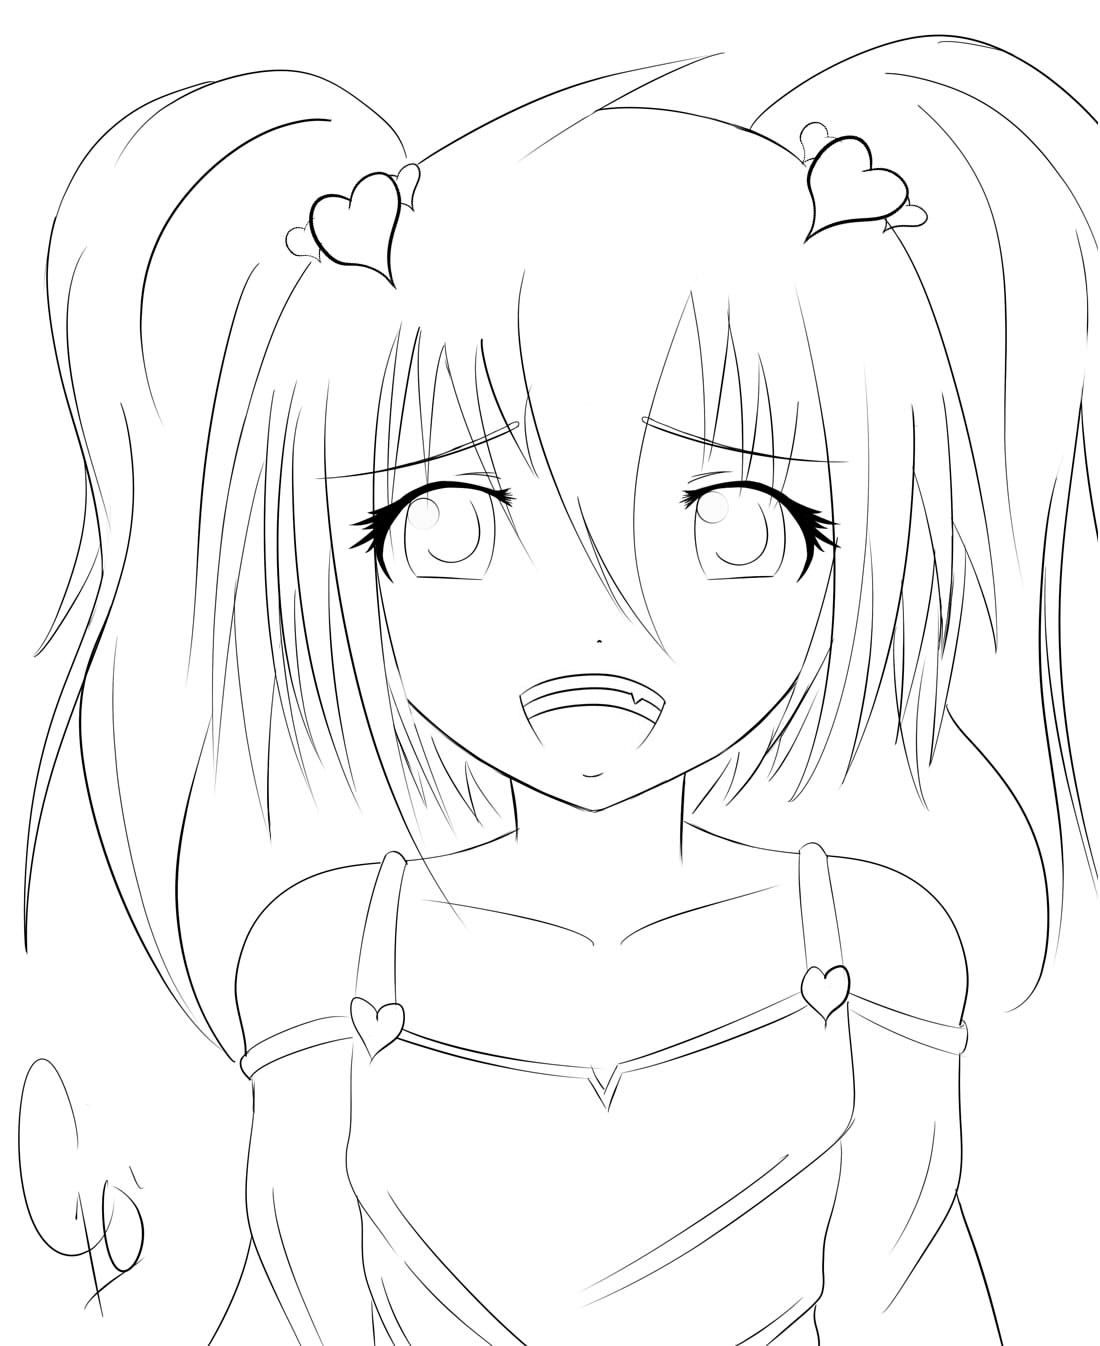 chibi couple coloring pages - Google Search | Coloring! | Pinterest